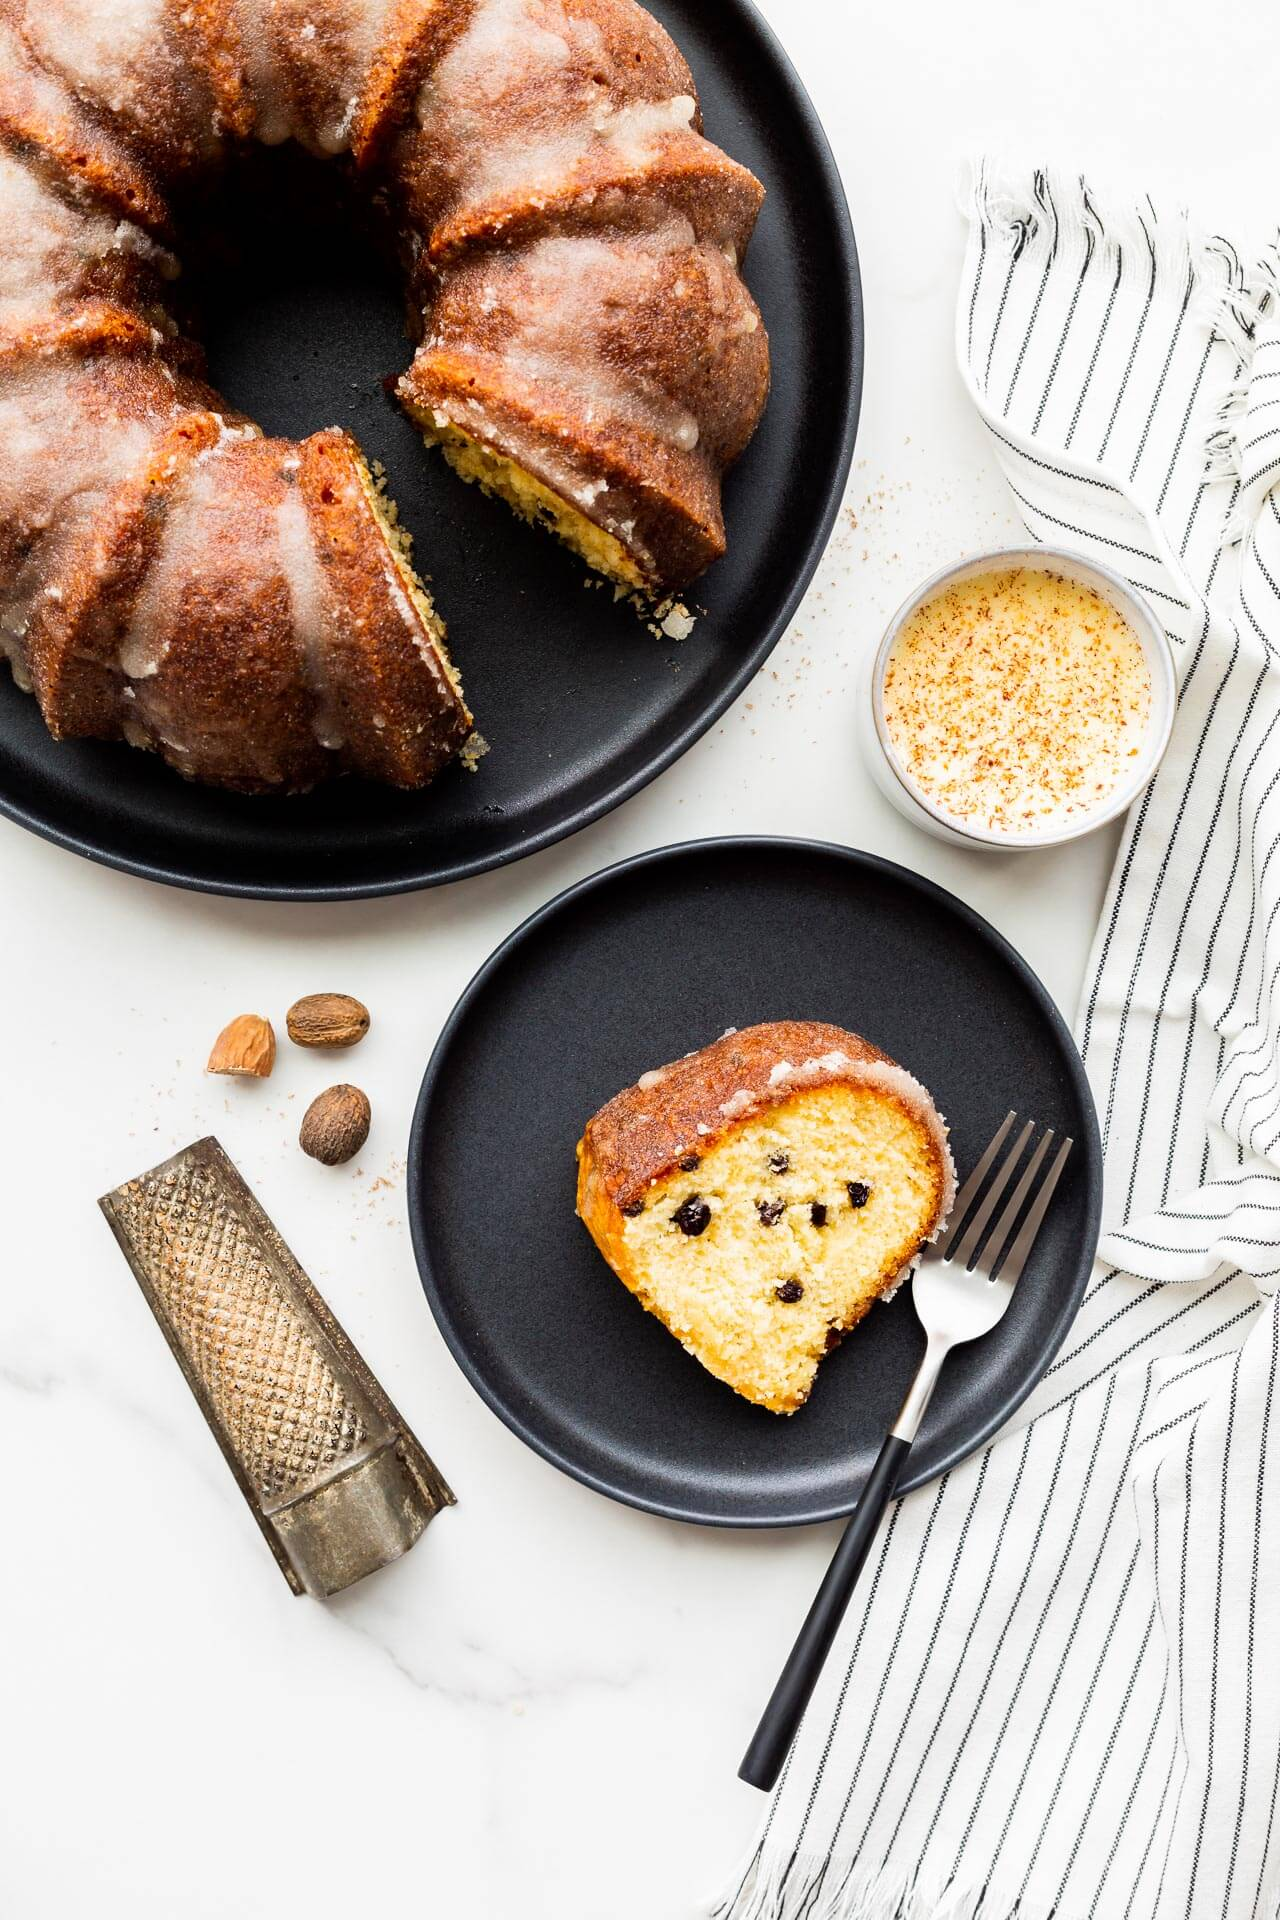 A slice of eggnog bundt cake with dried currants, served on black plate with a cup of eggnog and freshly grated nutmeg.